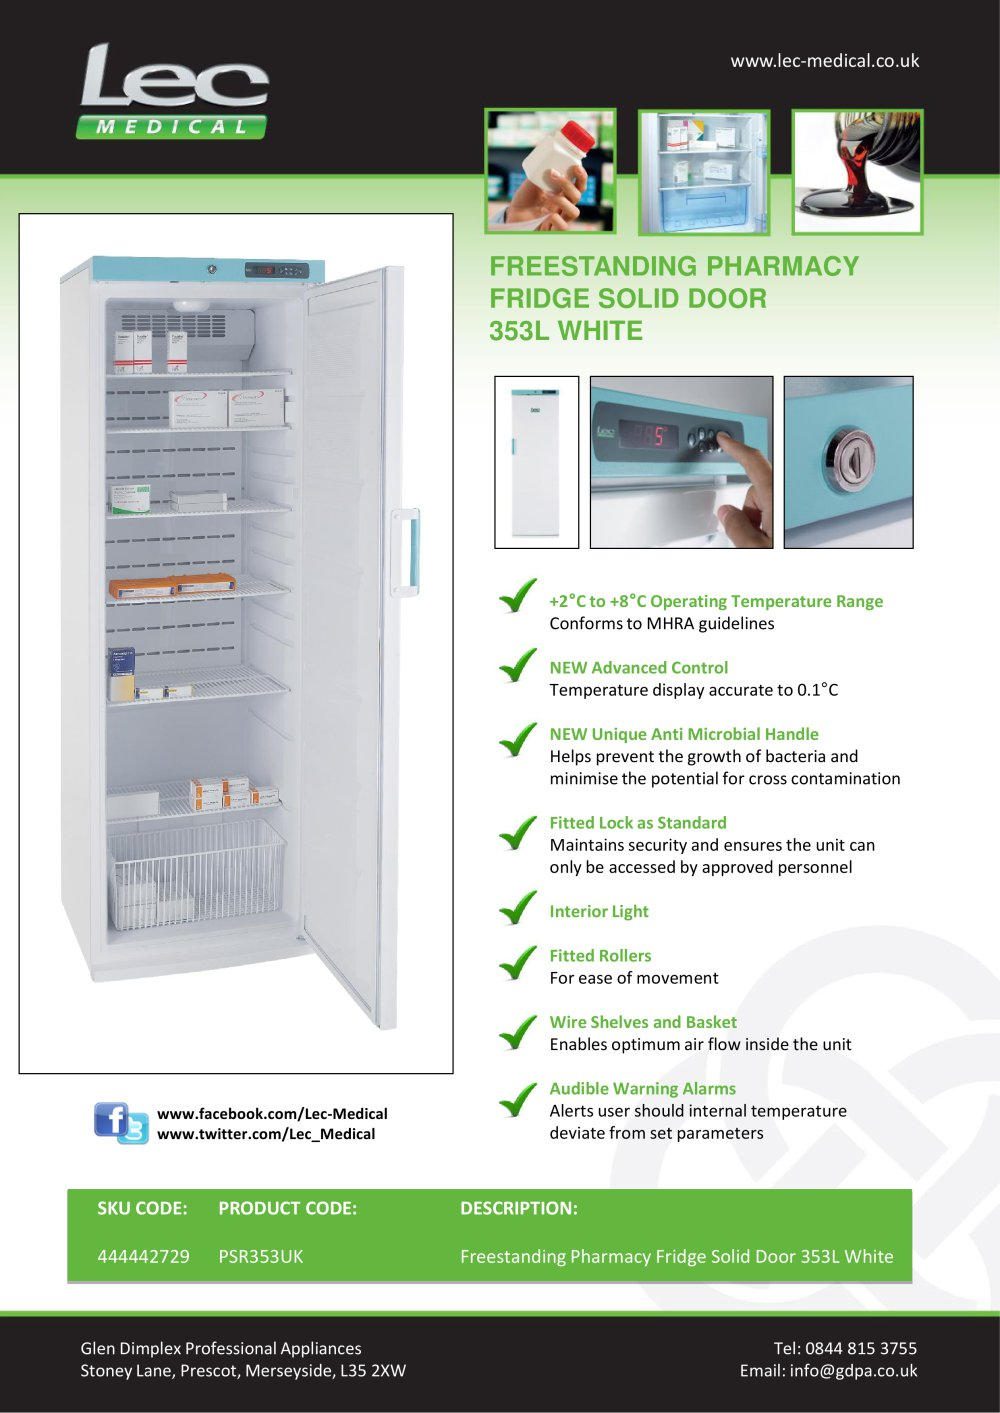 What temperature should a medication fridge be